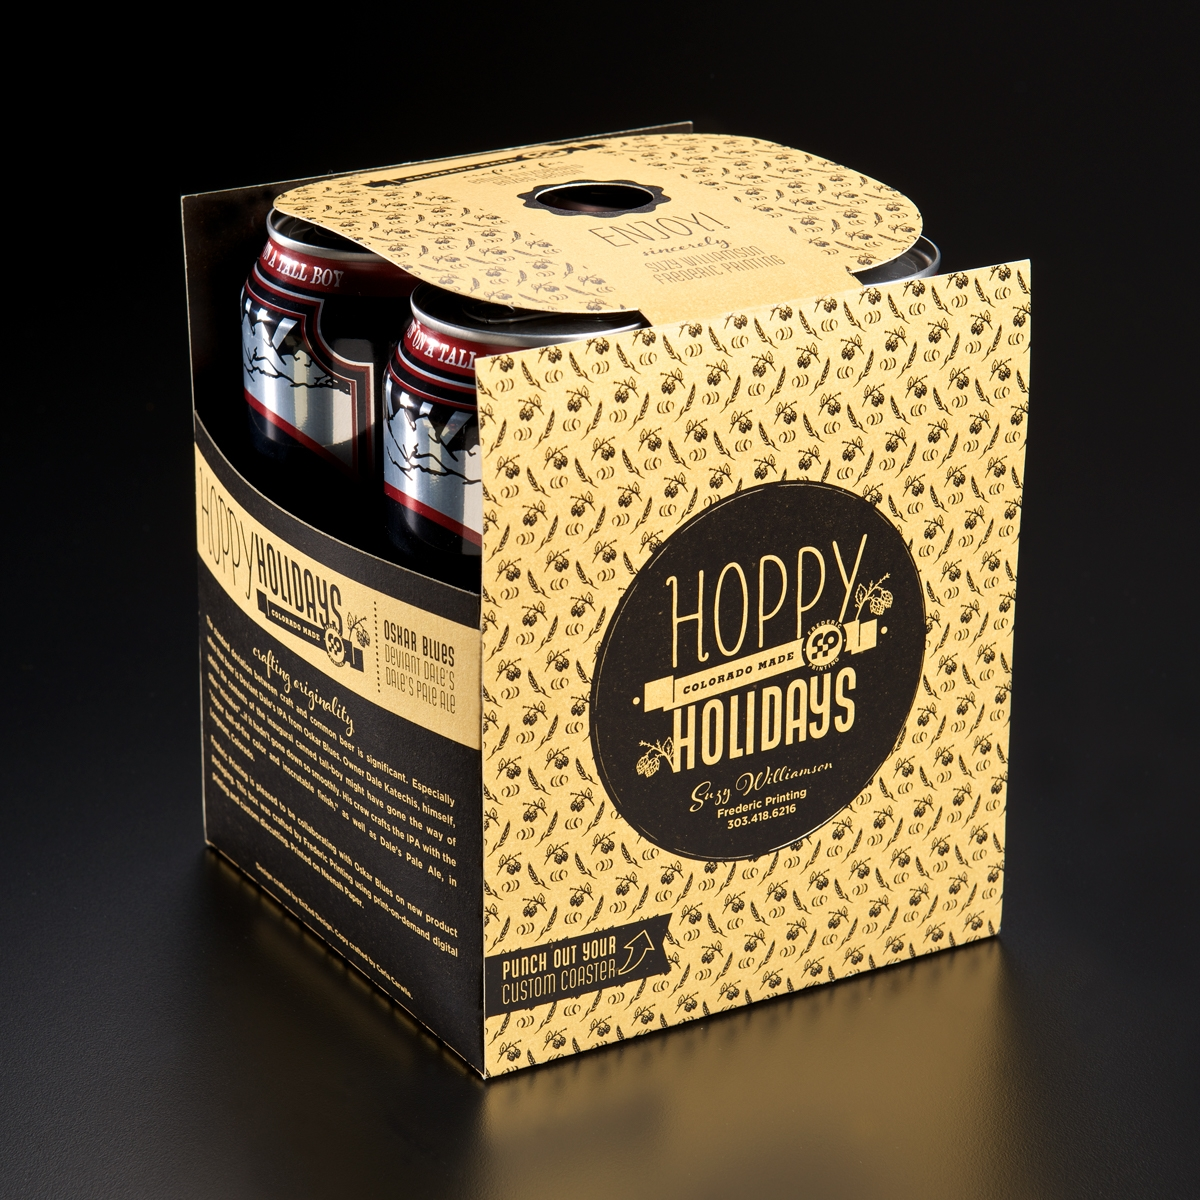 enzed_2016website_packaging_05_fp_02-hoppy